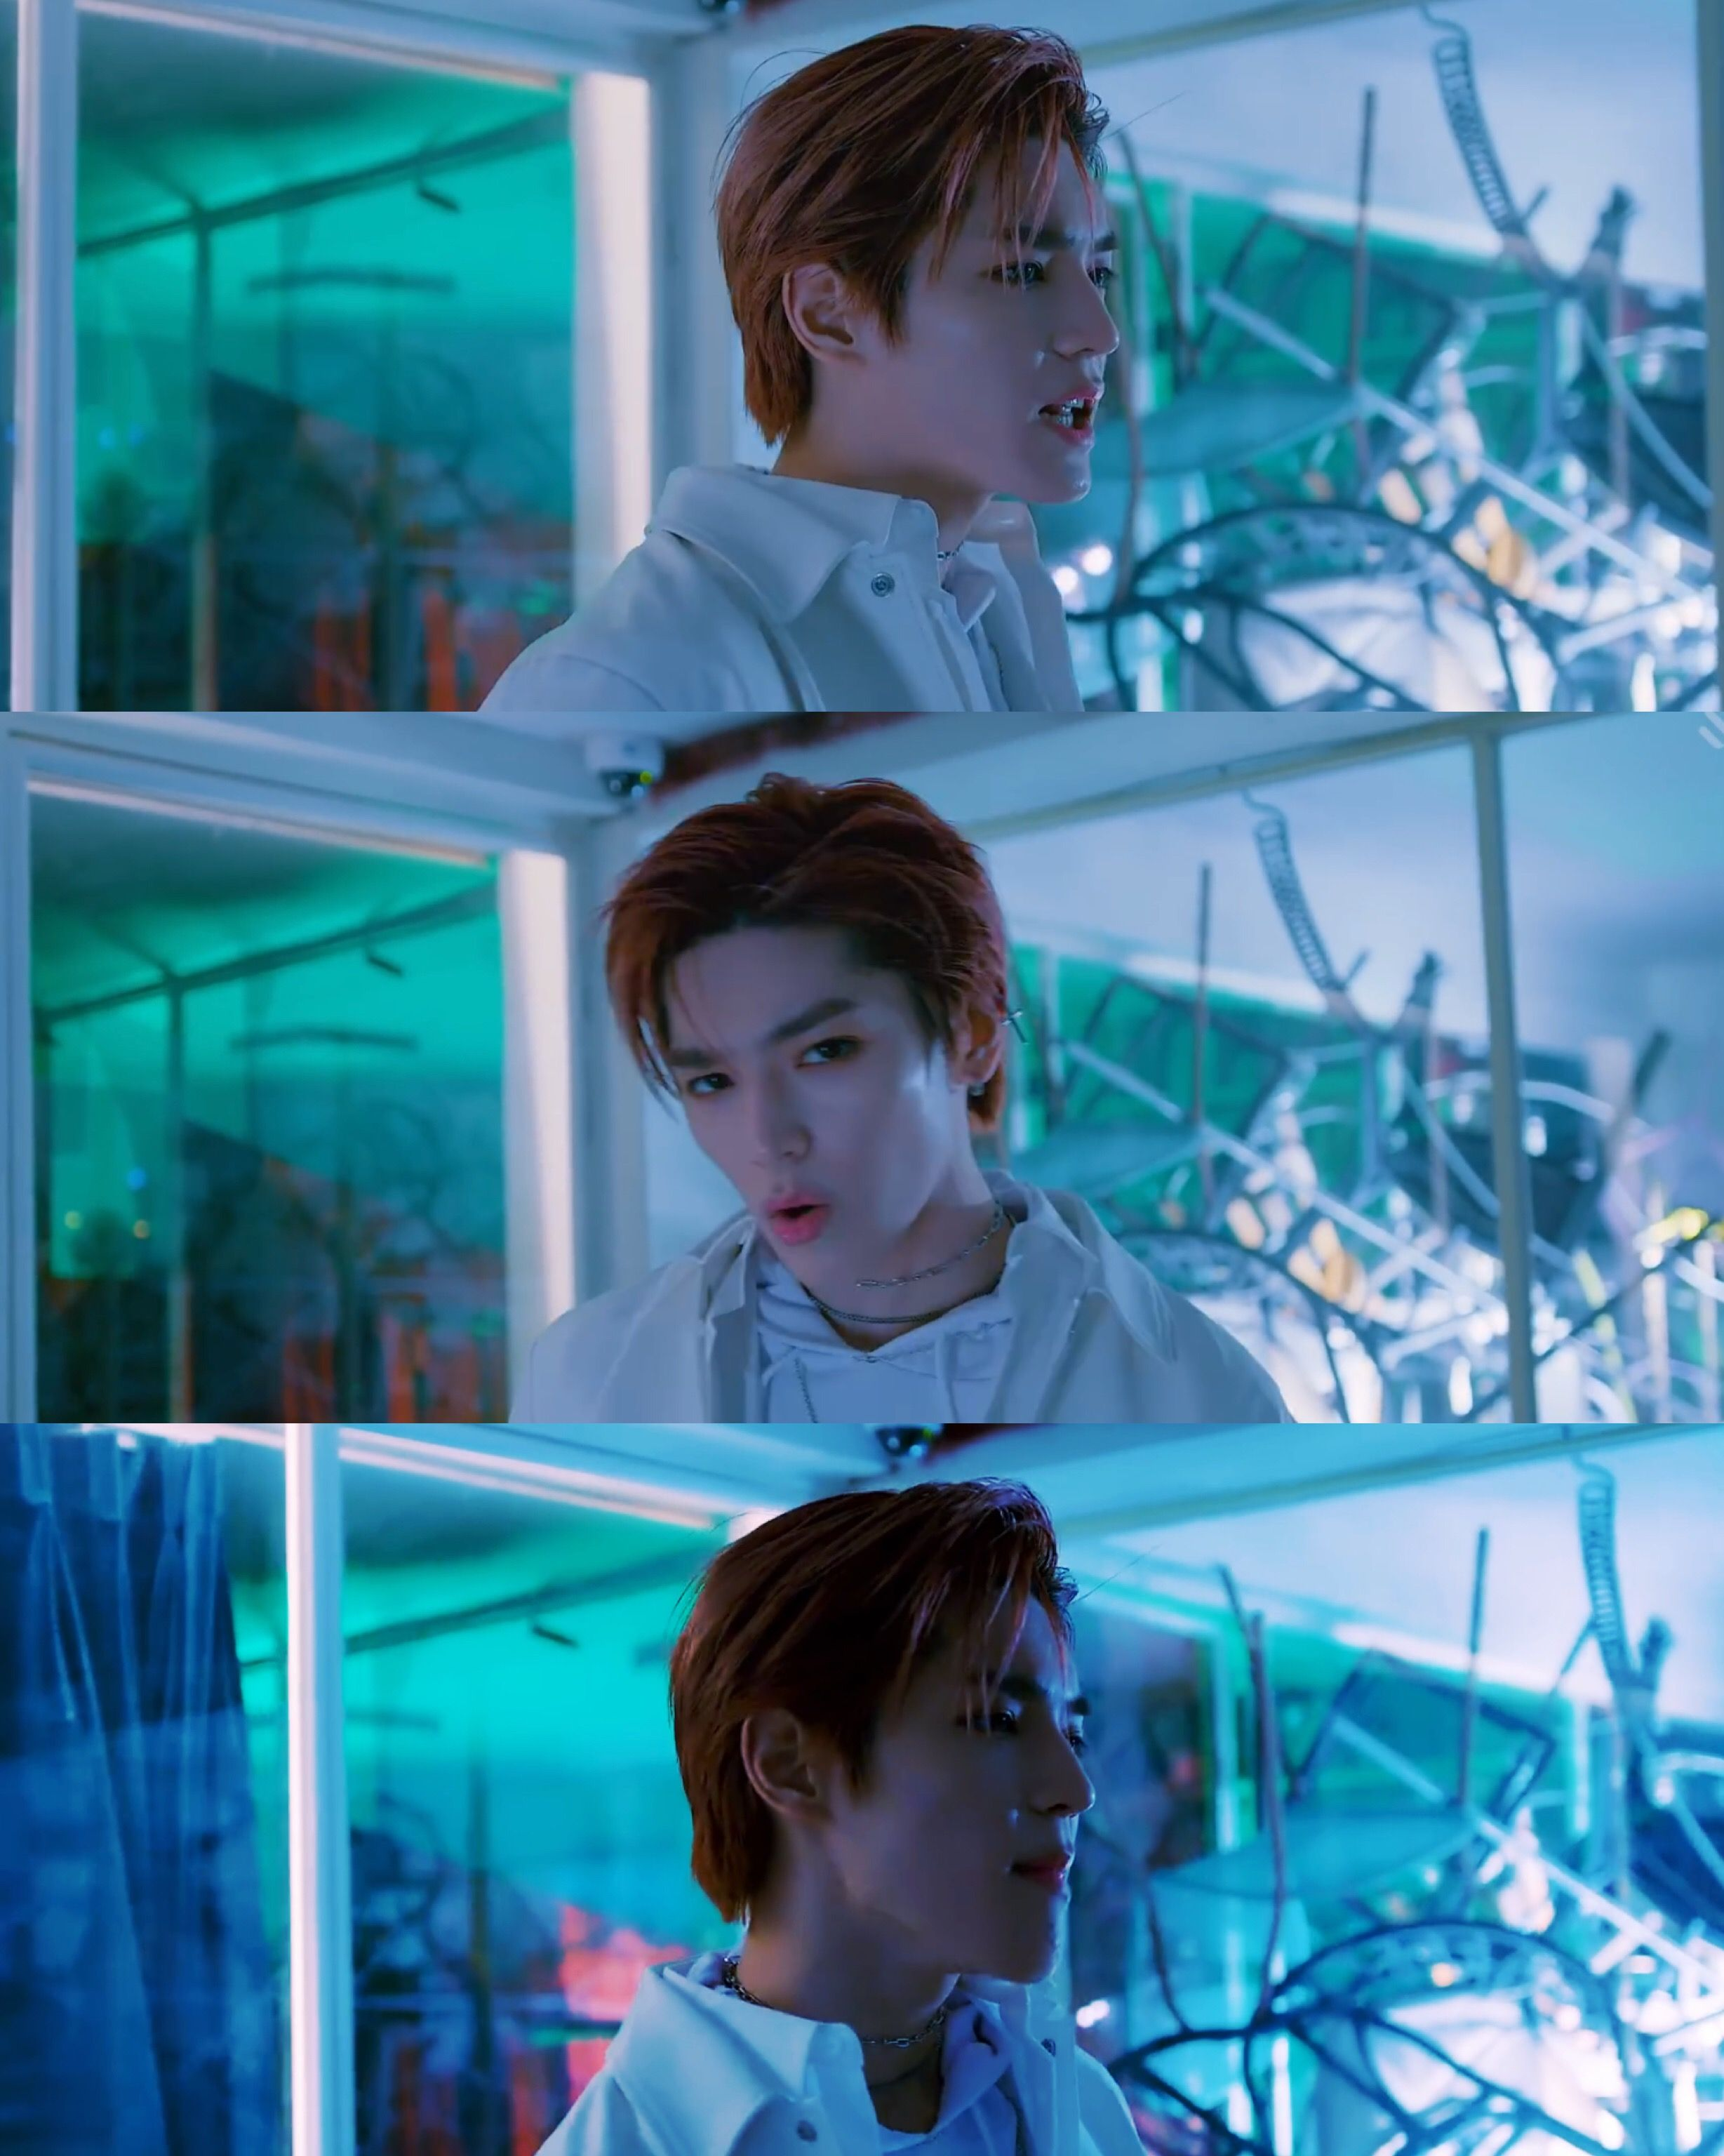 Taeyong Nct Yestoday Musicvideo Wallpaper Nct Nct Nct 127